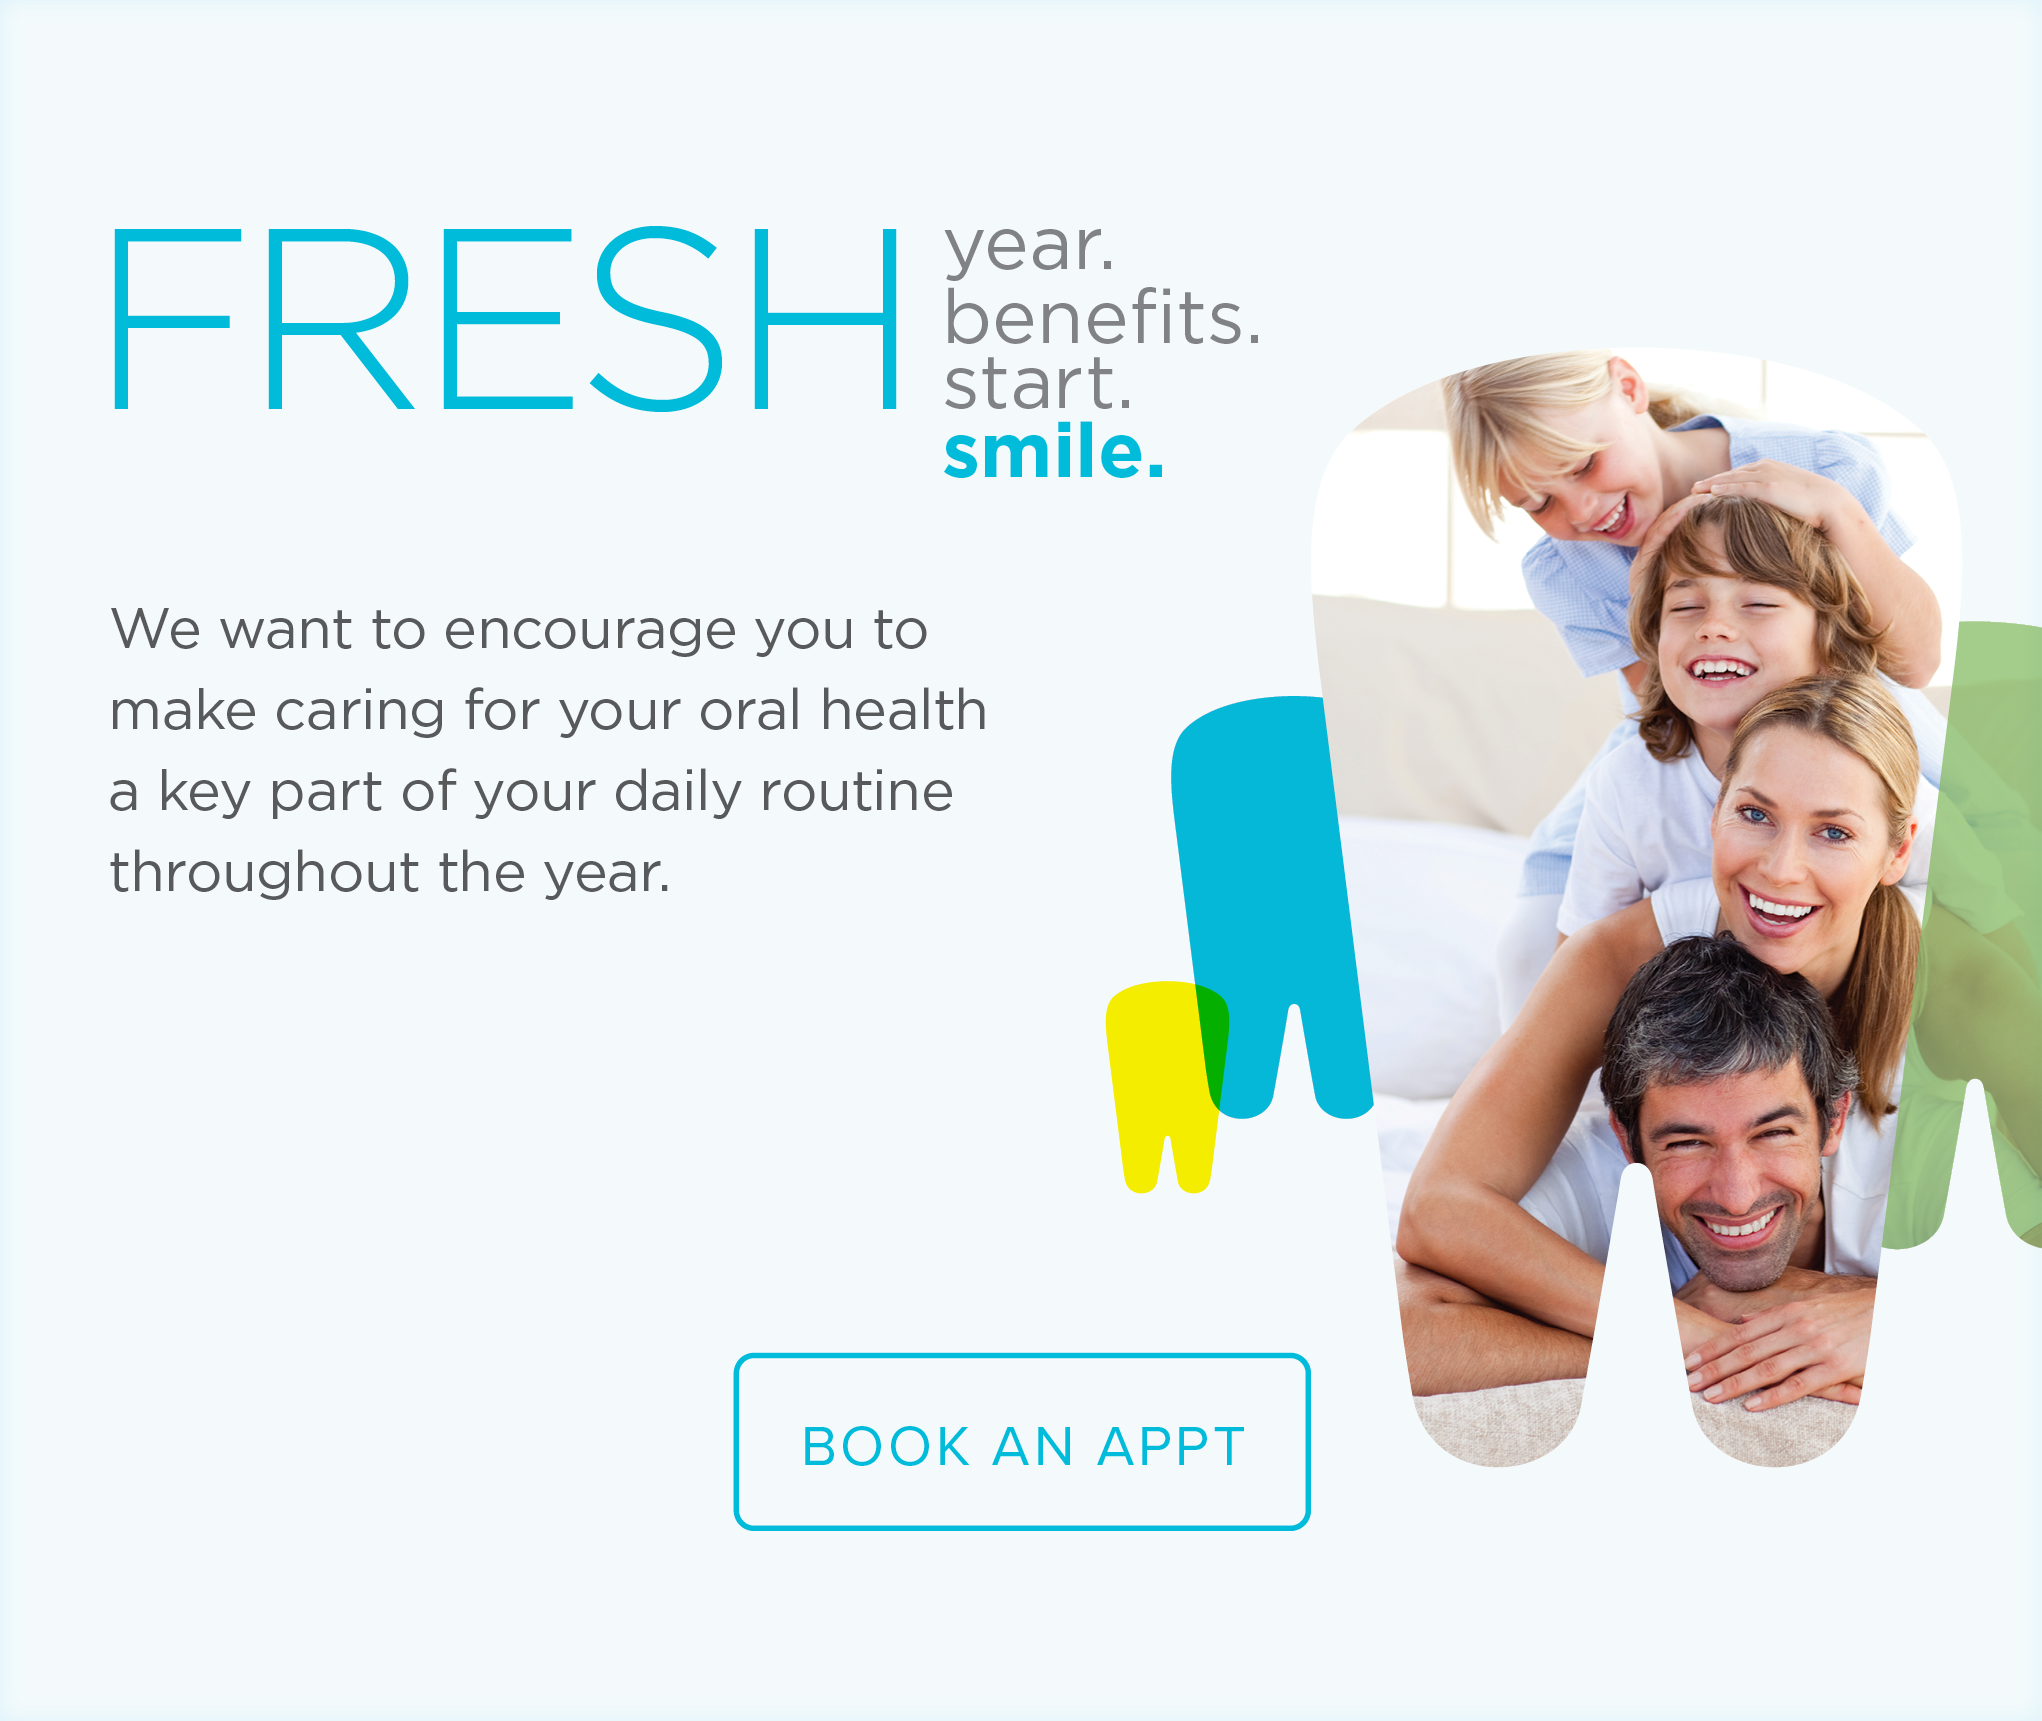 Carrollton Modern Dentistry - Make the Most of Your Benefits